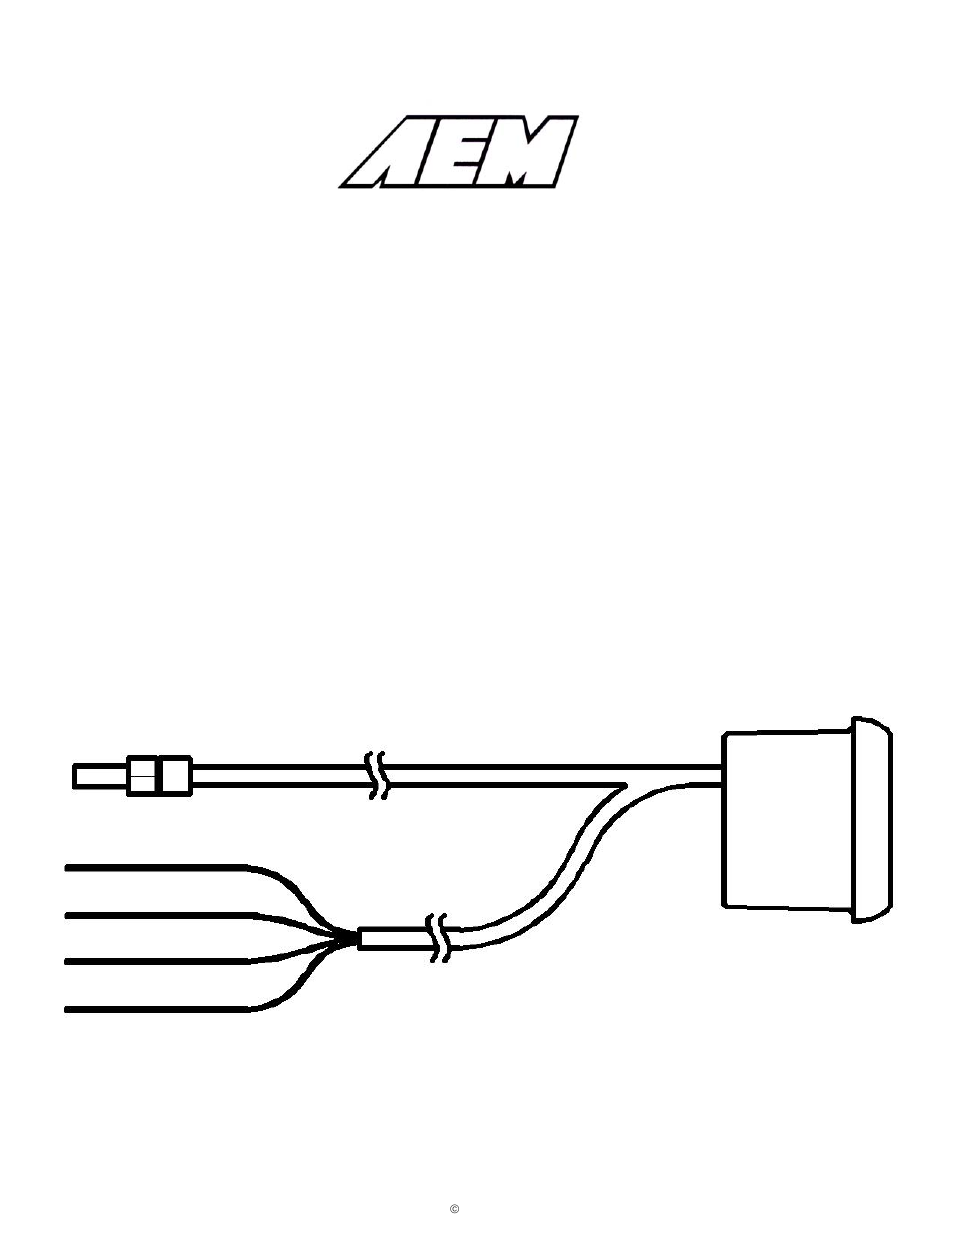 Aem Oil Pressure Gauge Wiring Diagram - Wiring Solutions